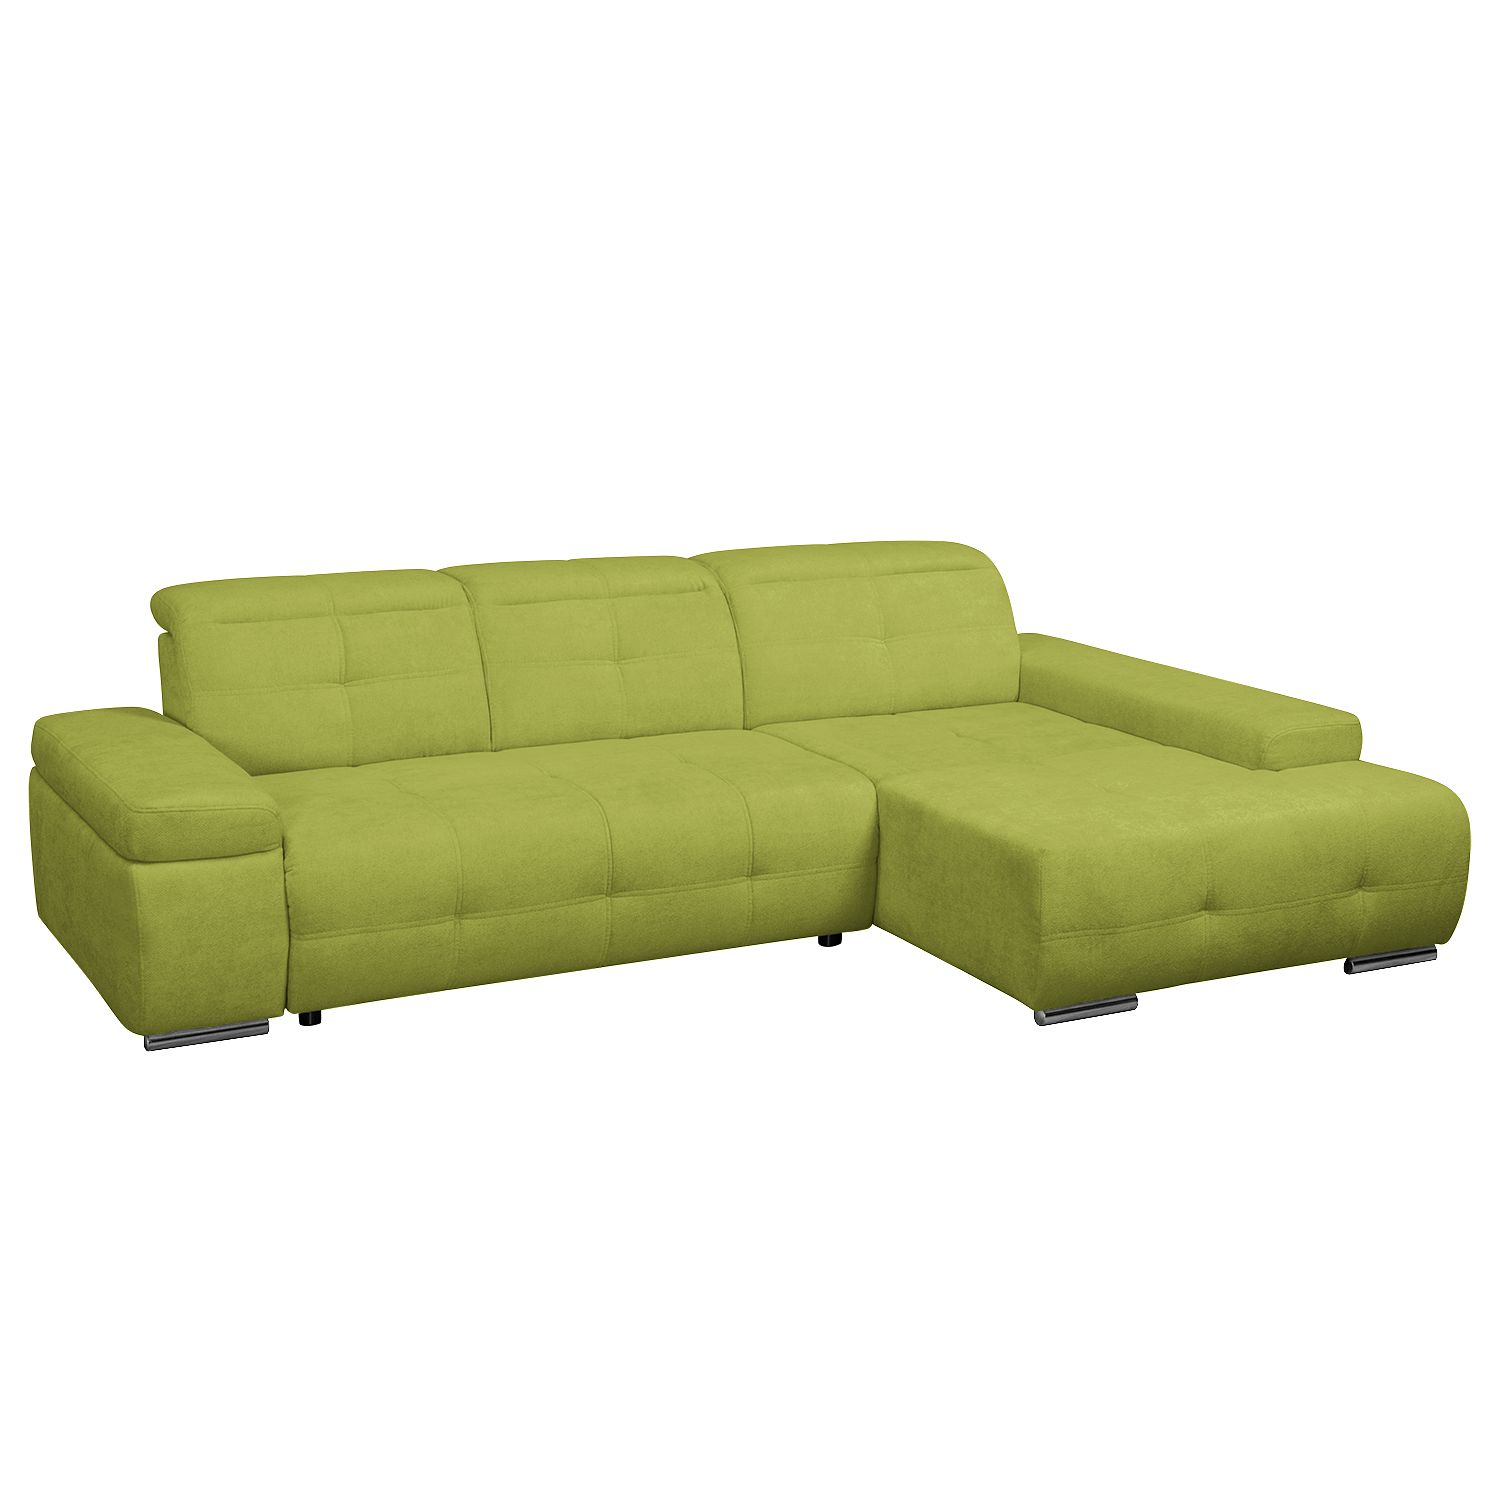 Xxl sofa mit bettfunktion  Kleine Sofas Mit Ottomane ~ CARPROLA for .